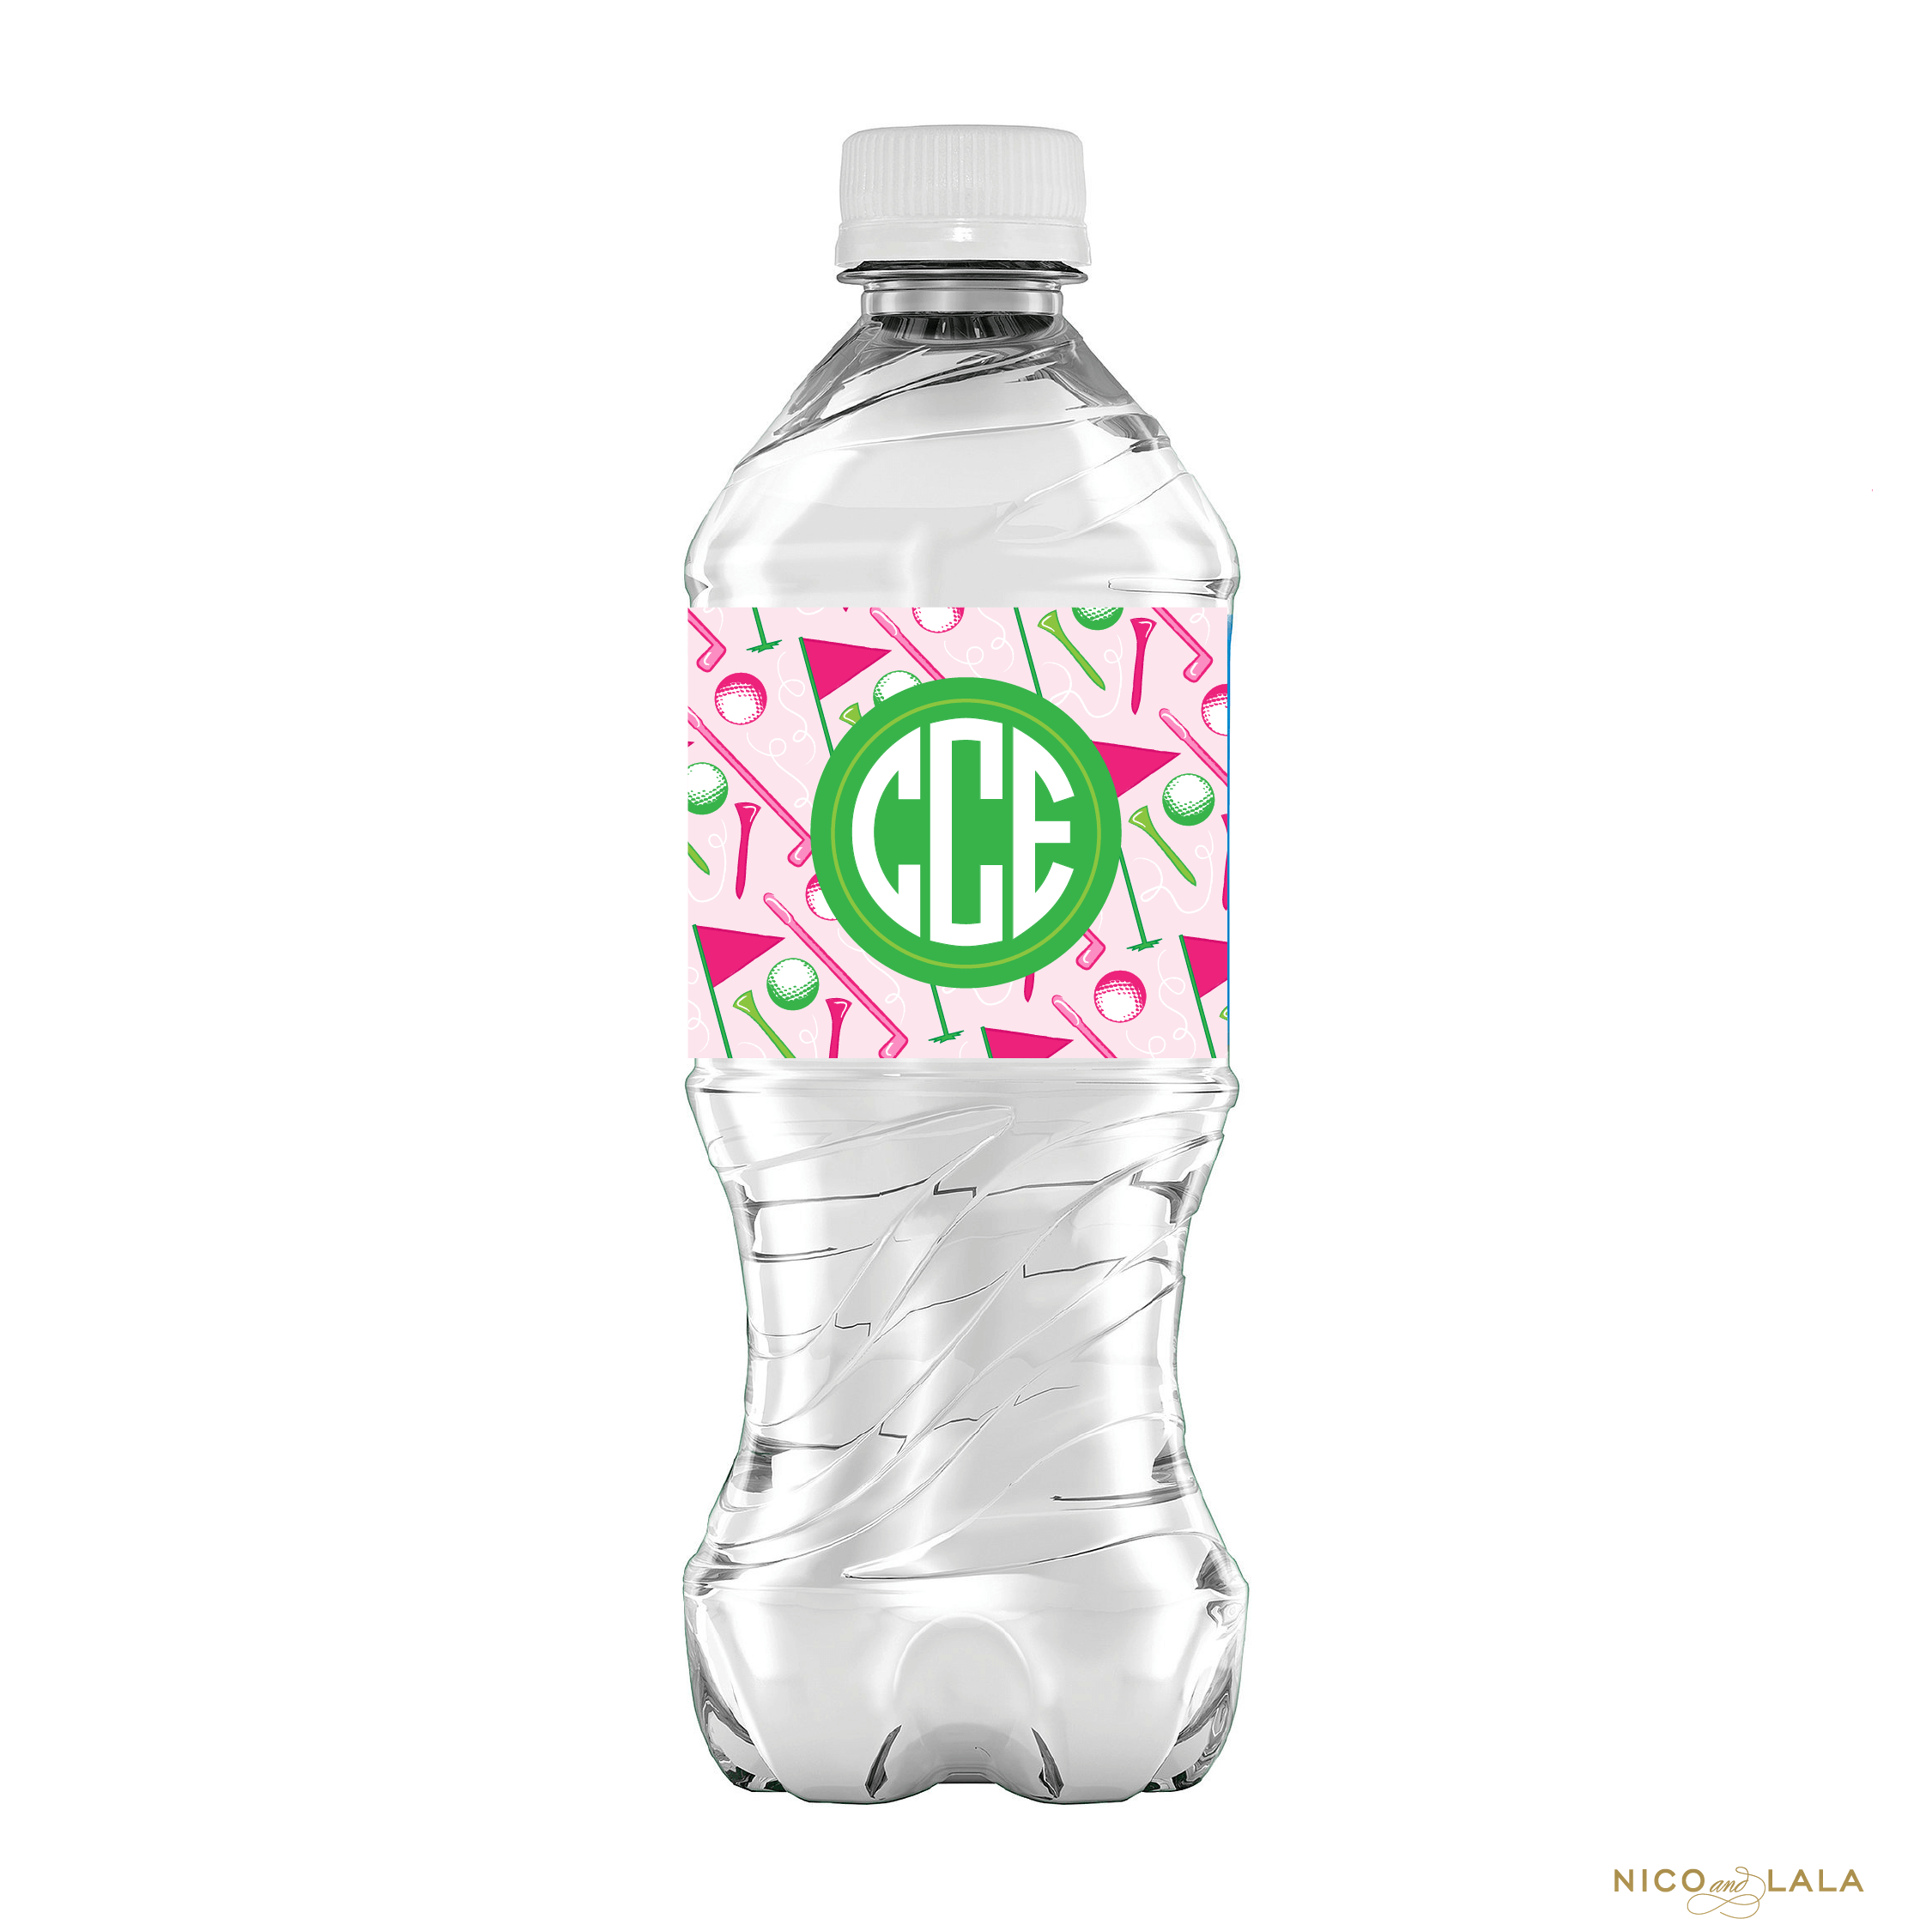 Girly Golf Water Bottle Labels